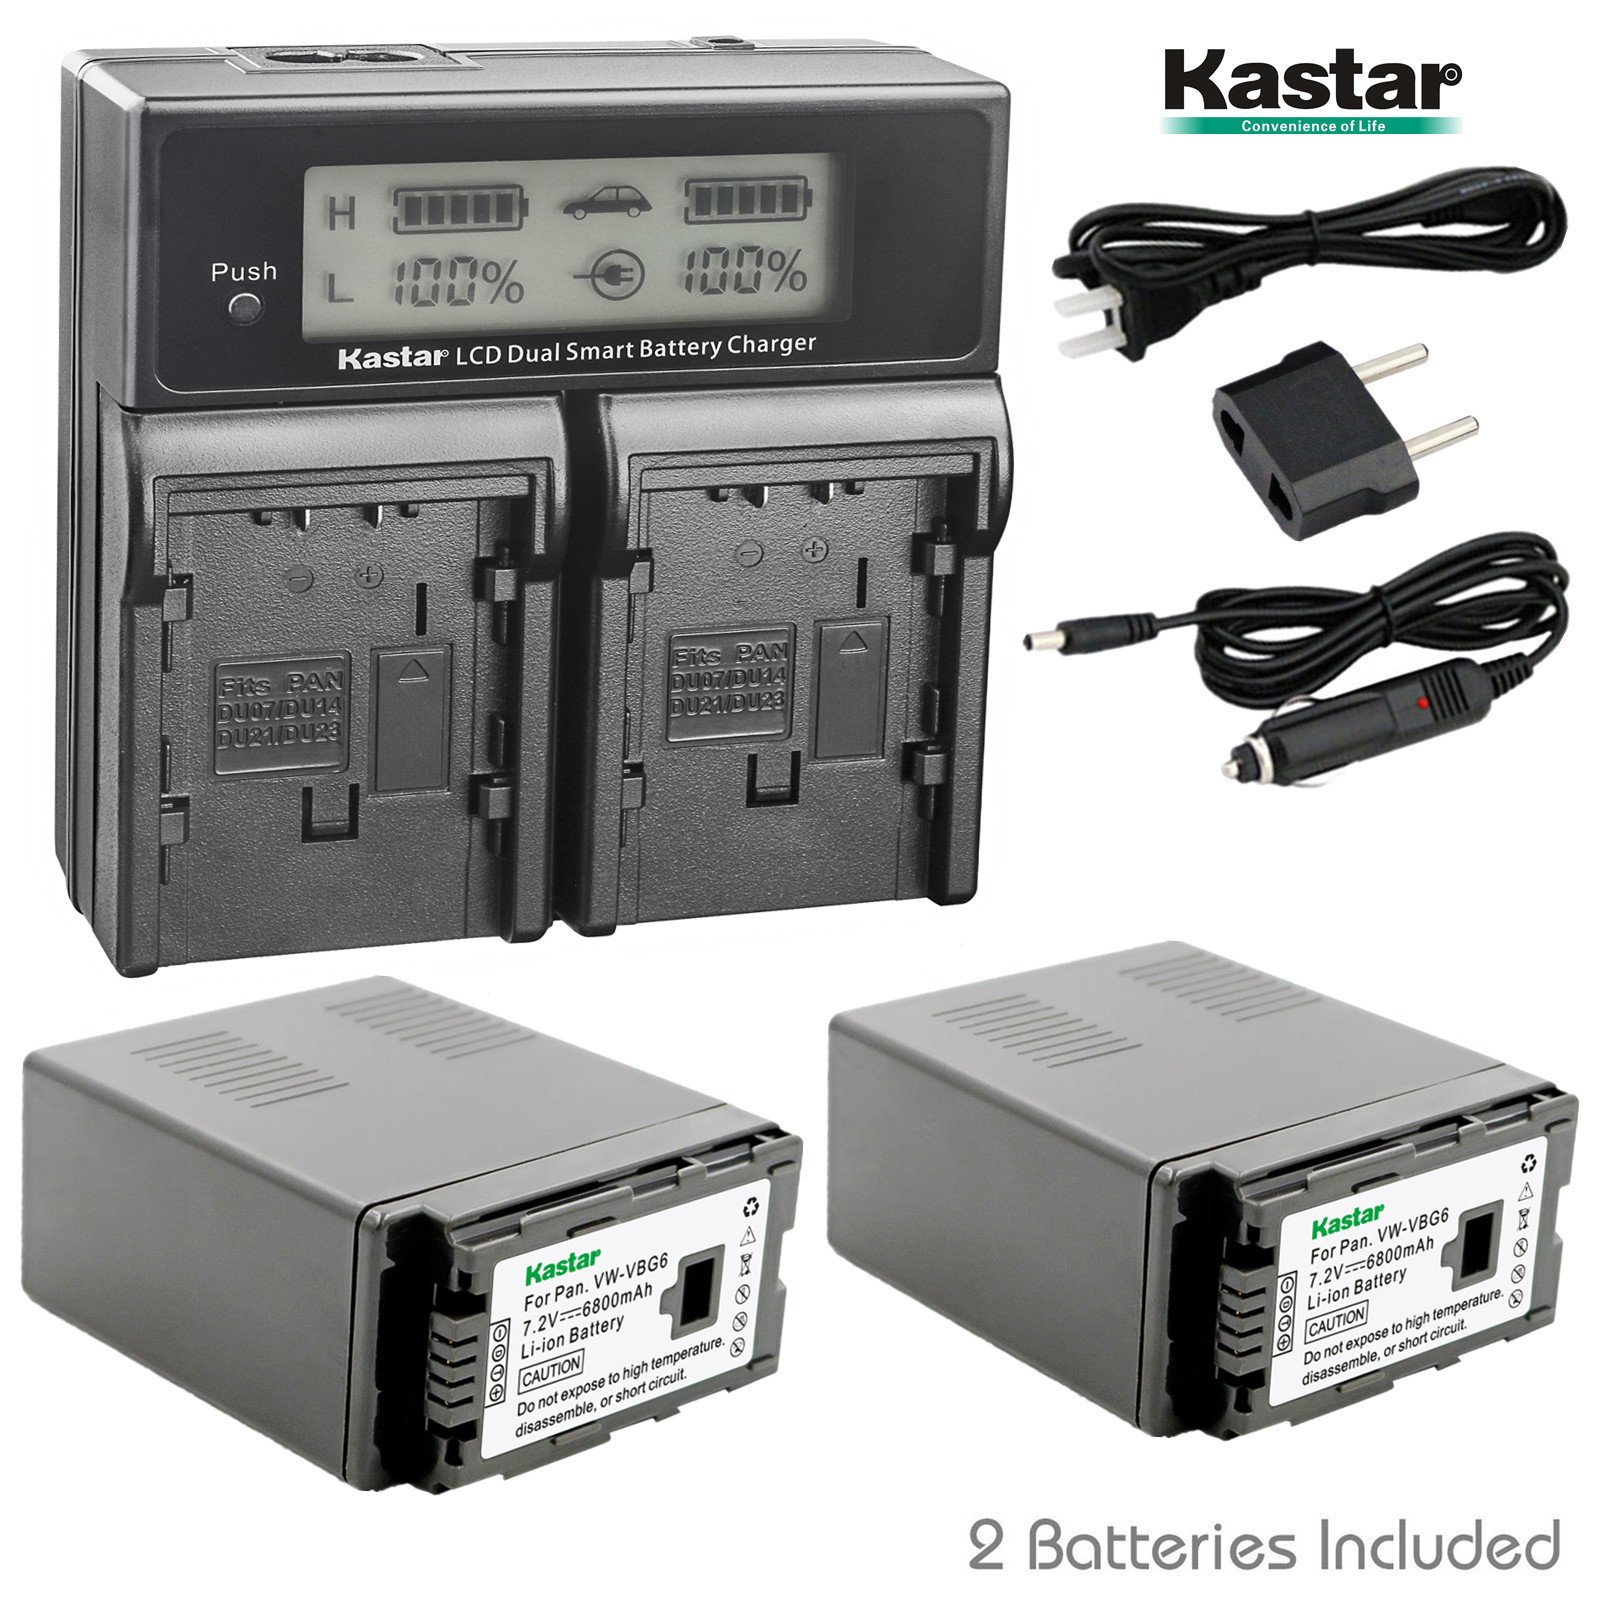 Kastar LCD Dual Smart Fast Charger & 2 x Battery for Panasonic VW-VBG6 VWVBG6 VBG6 Li-Ion Camcorder Battery and Panasonic AG-AC160A, AG-AC7, AG-AC130A, AG-AC160A, AG-HMC40, AG-HMC70, AG-HMC150 by Kastar